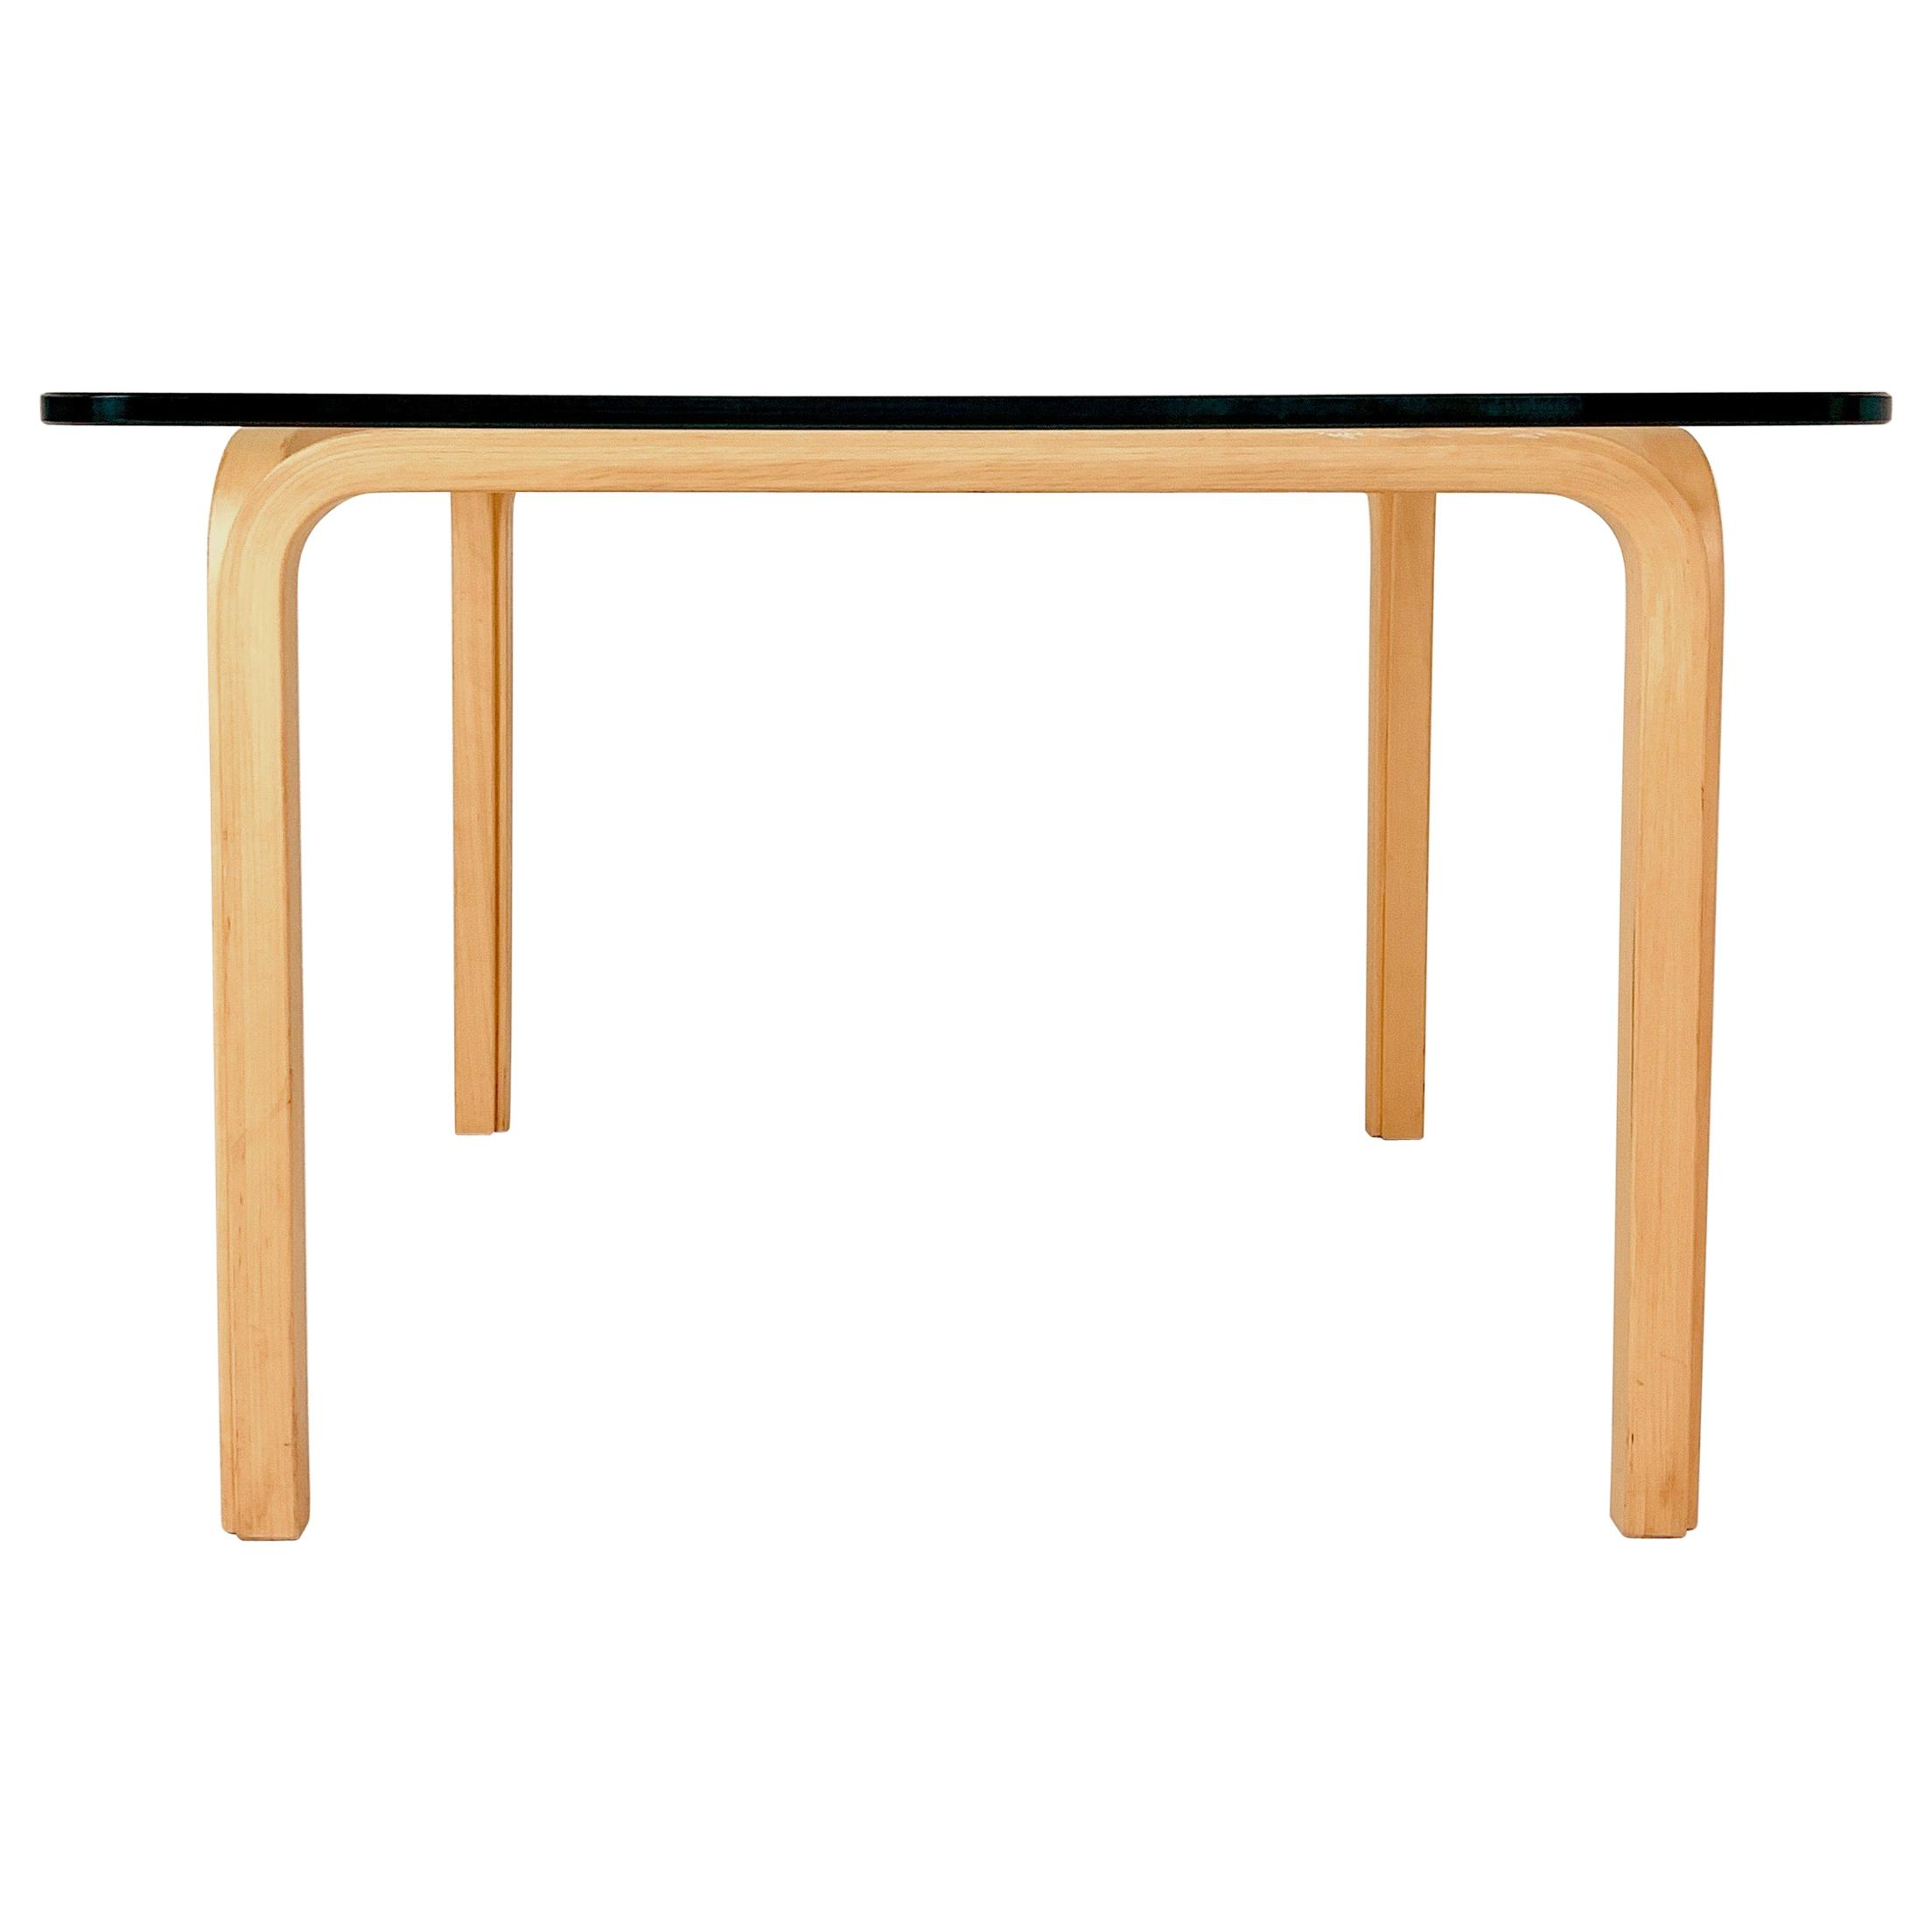 Latest Alvar Aalto Artek Y805 Glass And Bentwood Birch Coffee Or Cocktail Table Intended For Transitional 8 Seating Rectangular Helsinki Dining Tables (View 13 of 30)